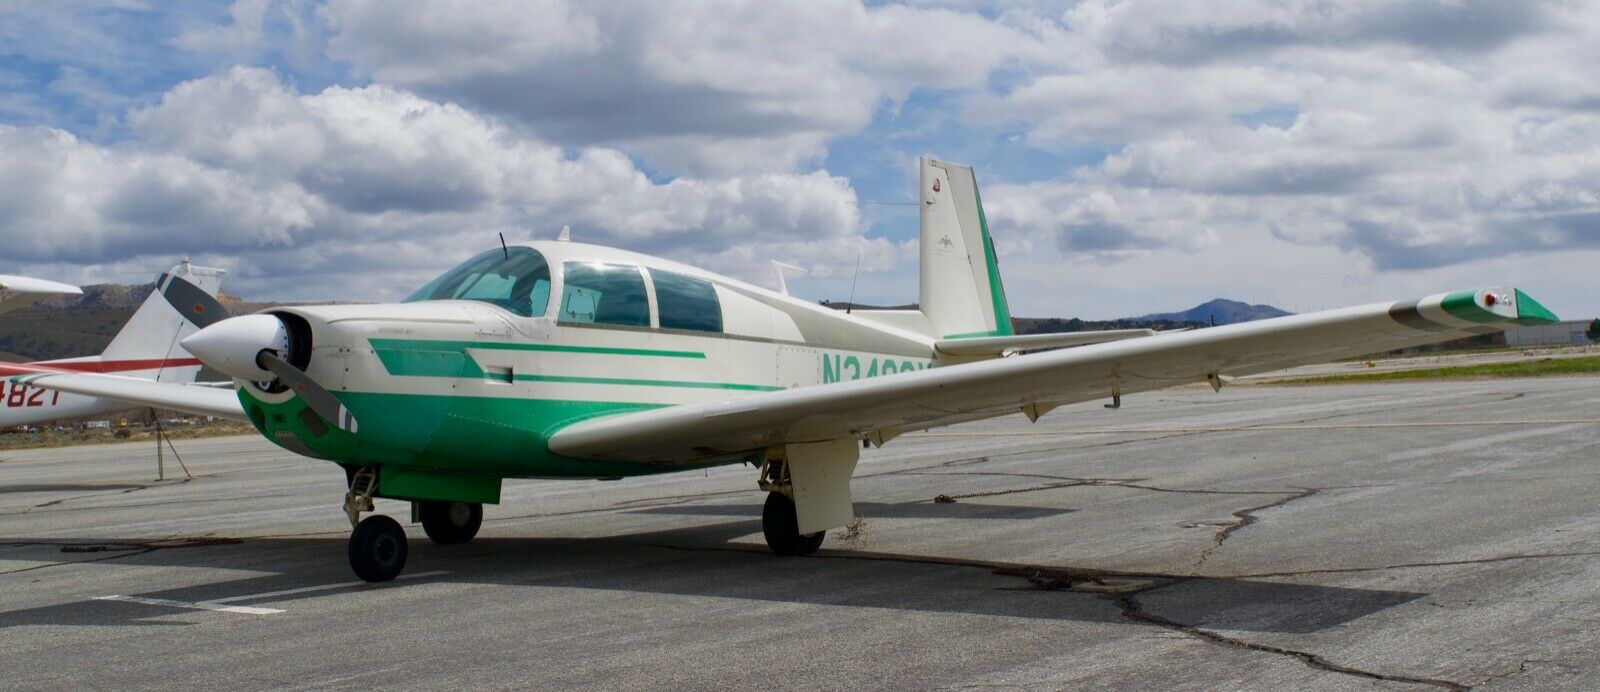 great shape 1966 Mooney M20E aircraft for sale